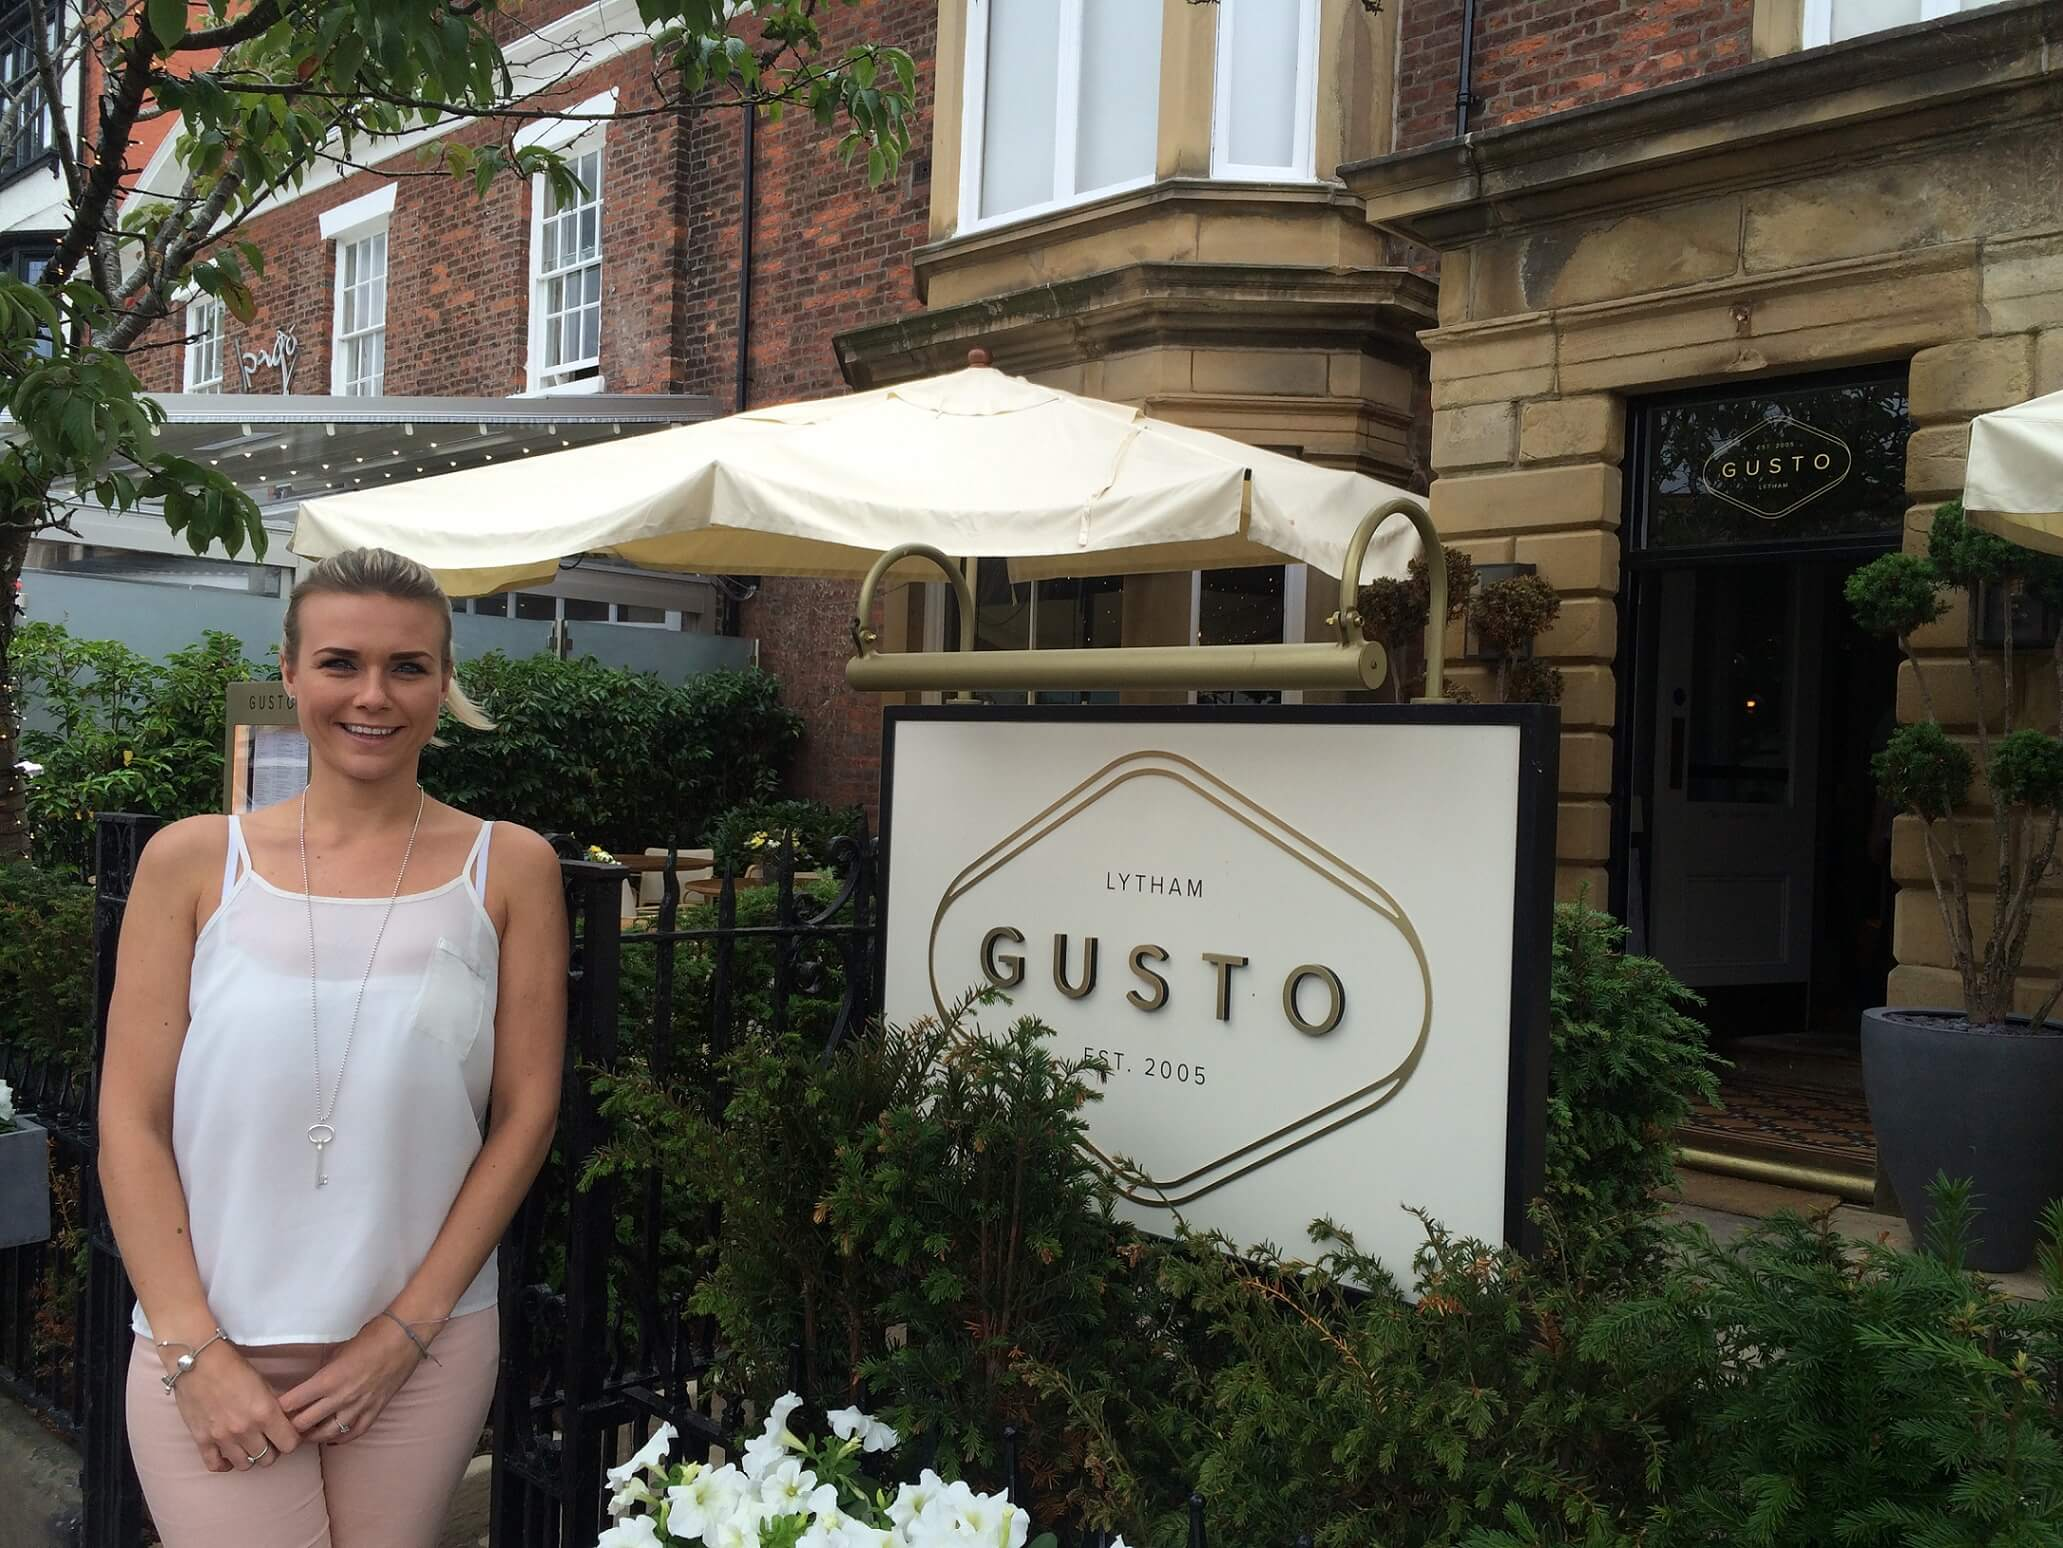 Gusto Appoints New Business Development Manager